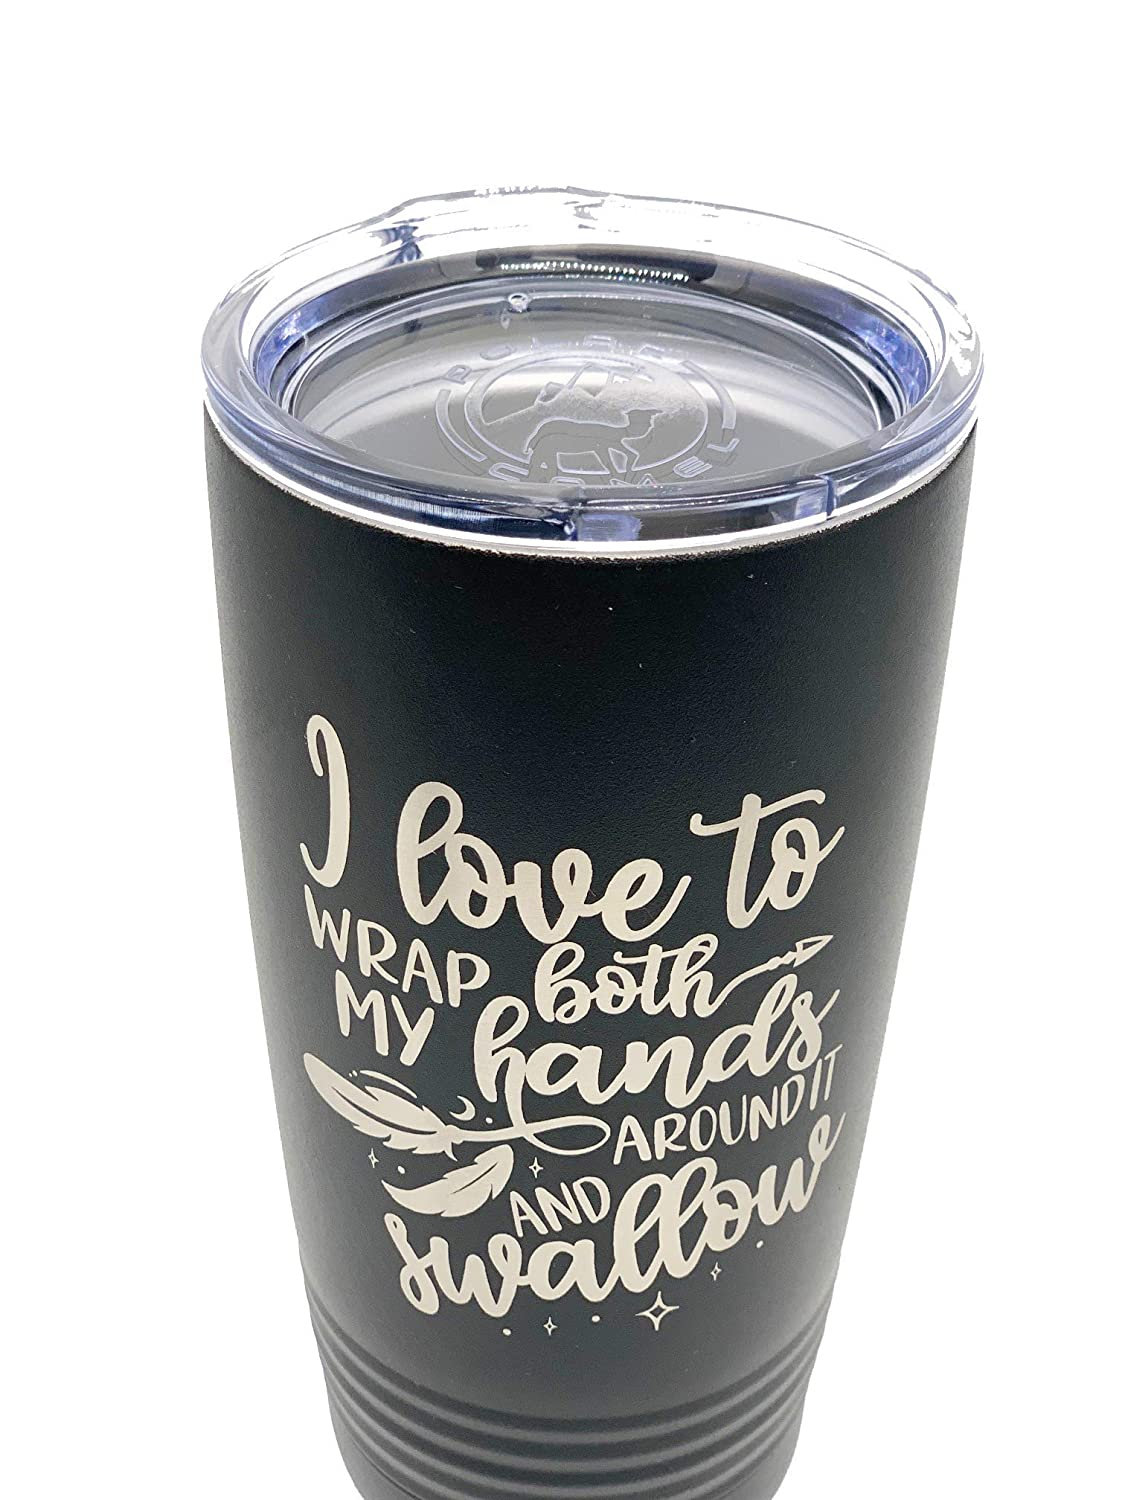 Funny Stemless Wine Glass Tumbler Gag Gift for Women Laser Engraved Bachelorette Parties Gift for Her insulated wine tumbler I love to wrap both my hands around it and swallow Bachelorette Gift